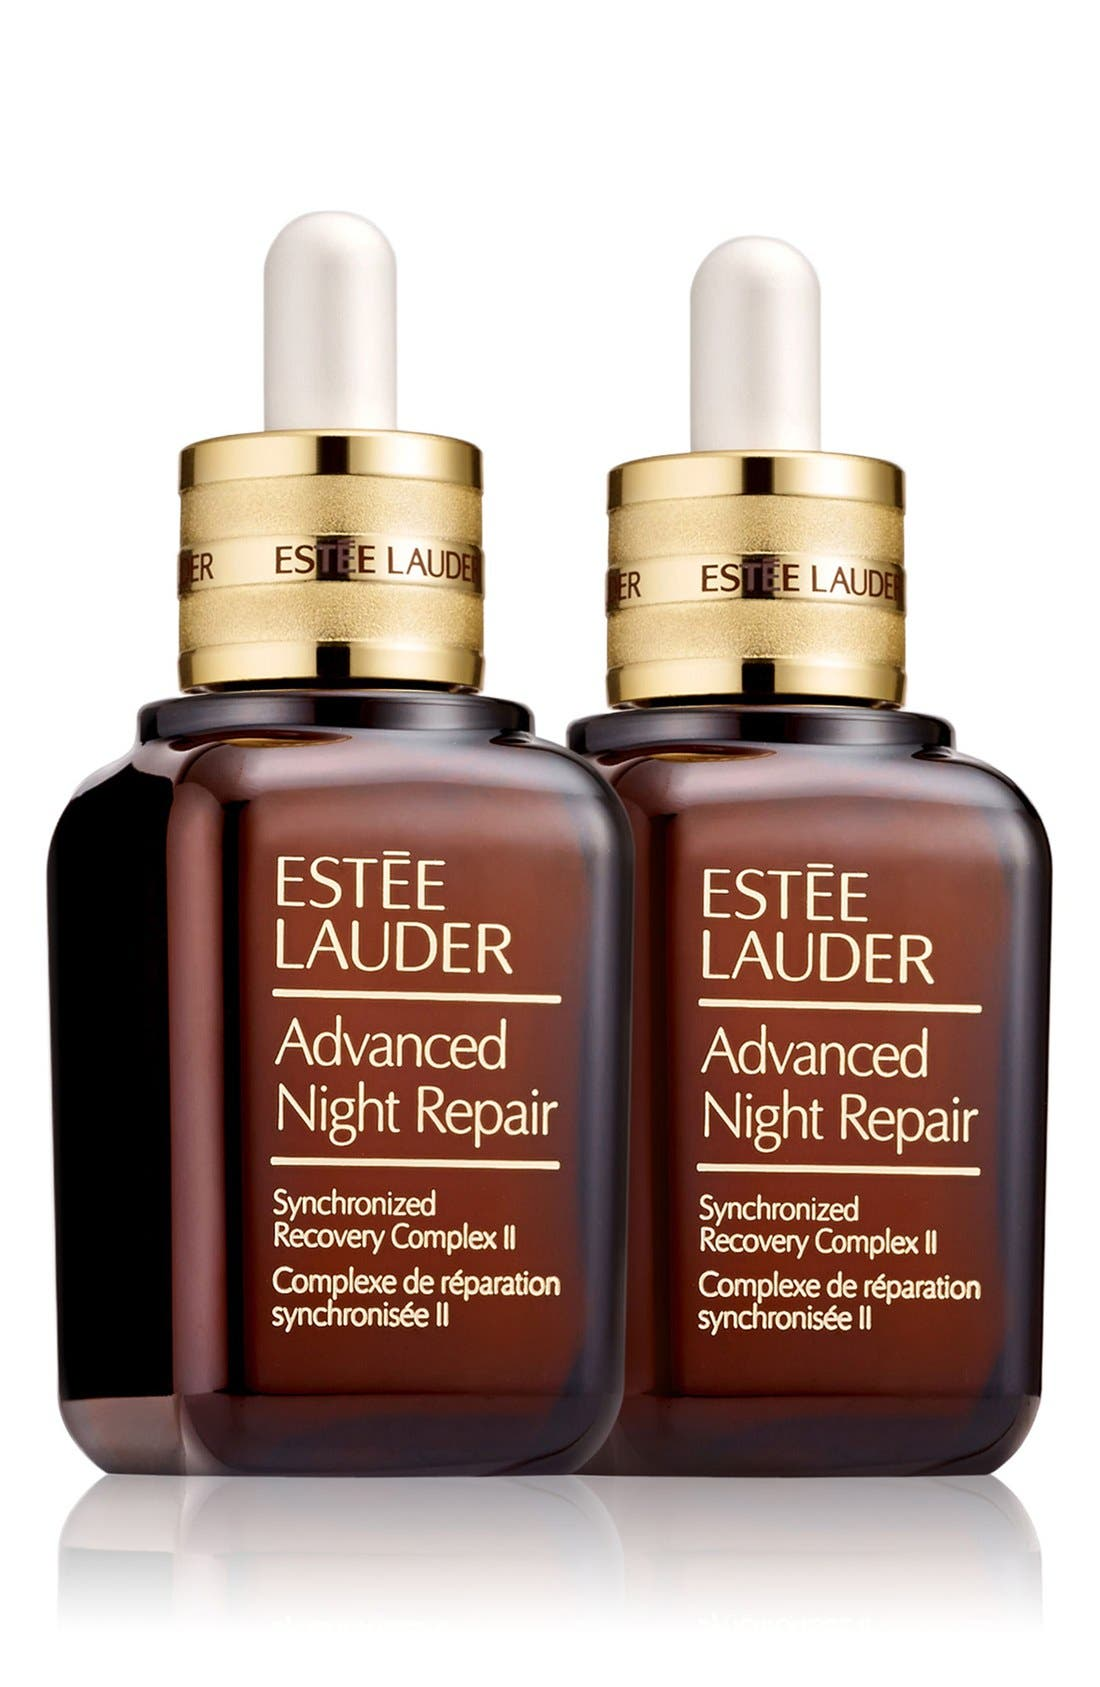 Estée Lauder Advanced Night Repair Synchronized Recovery Complex II Duo ($196 Value)